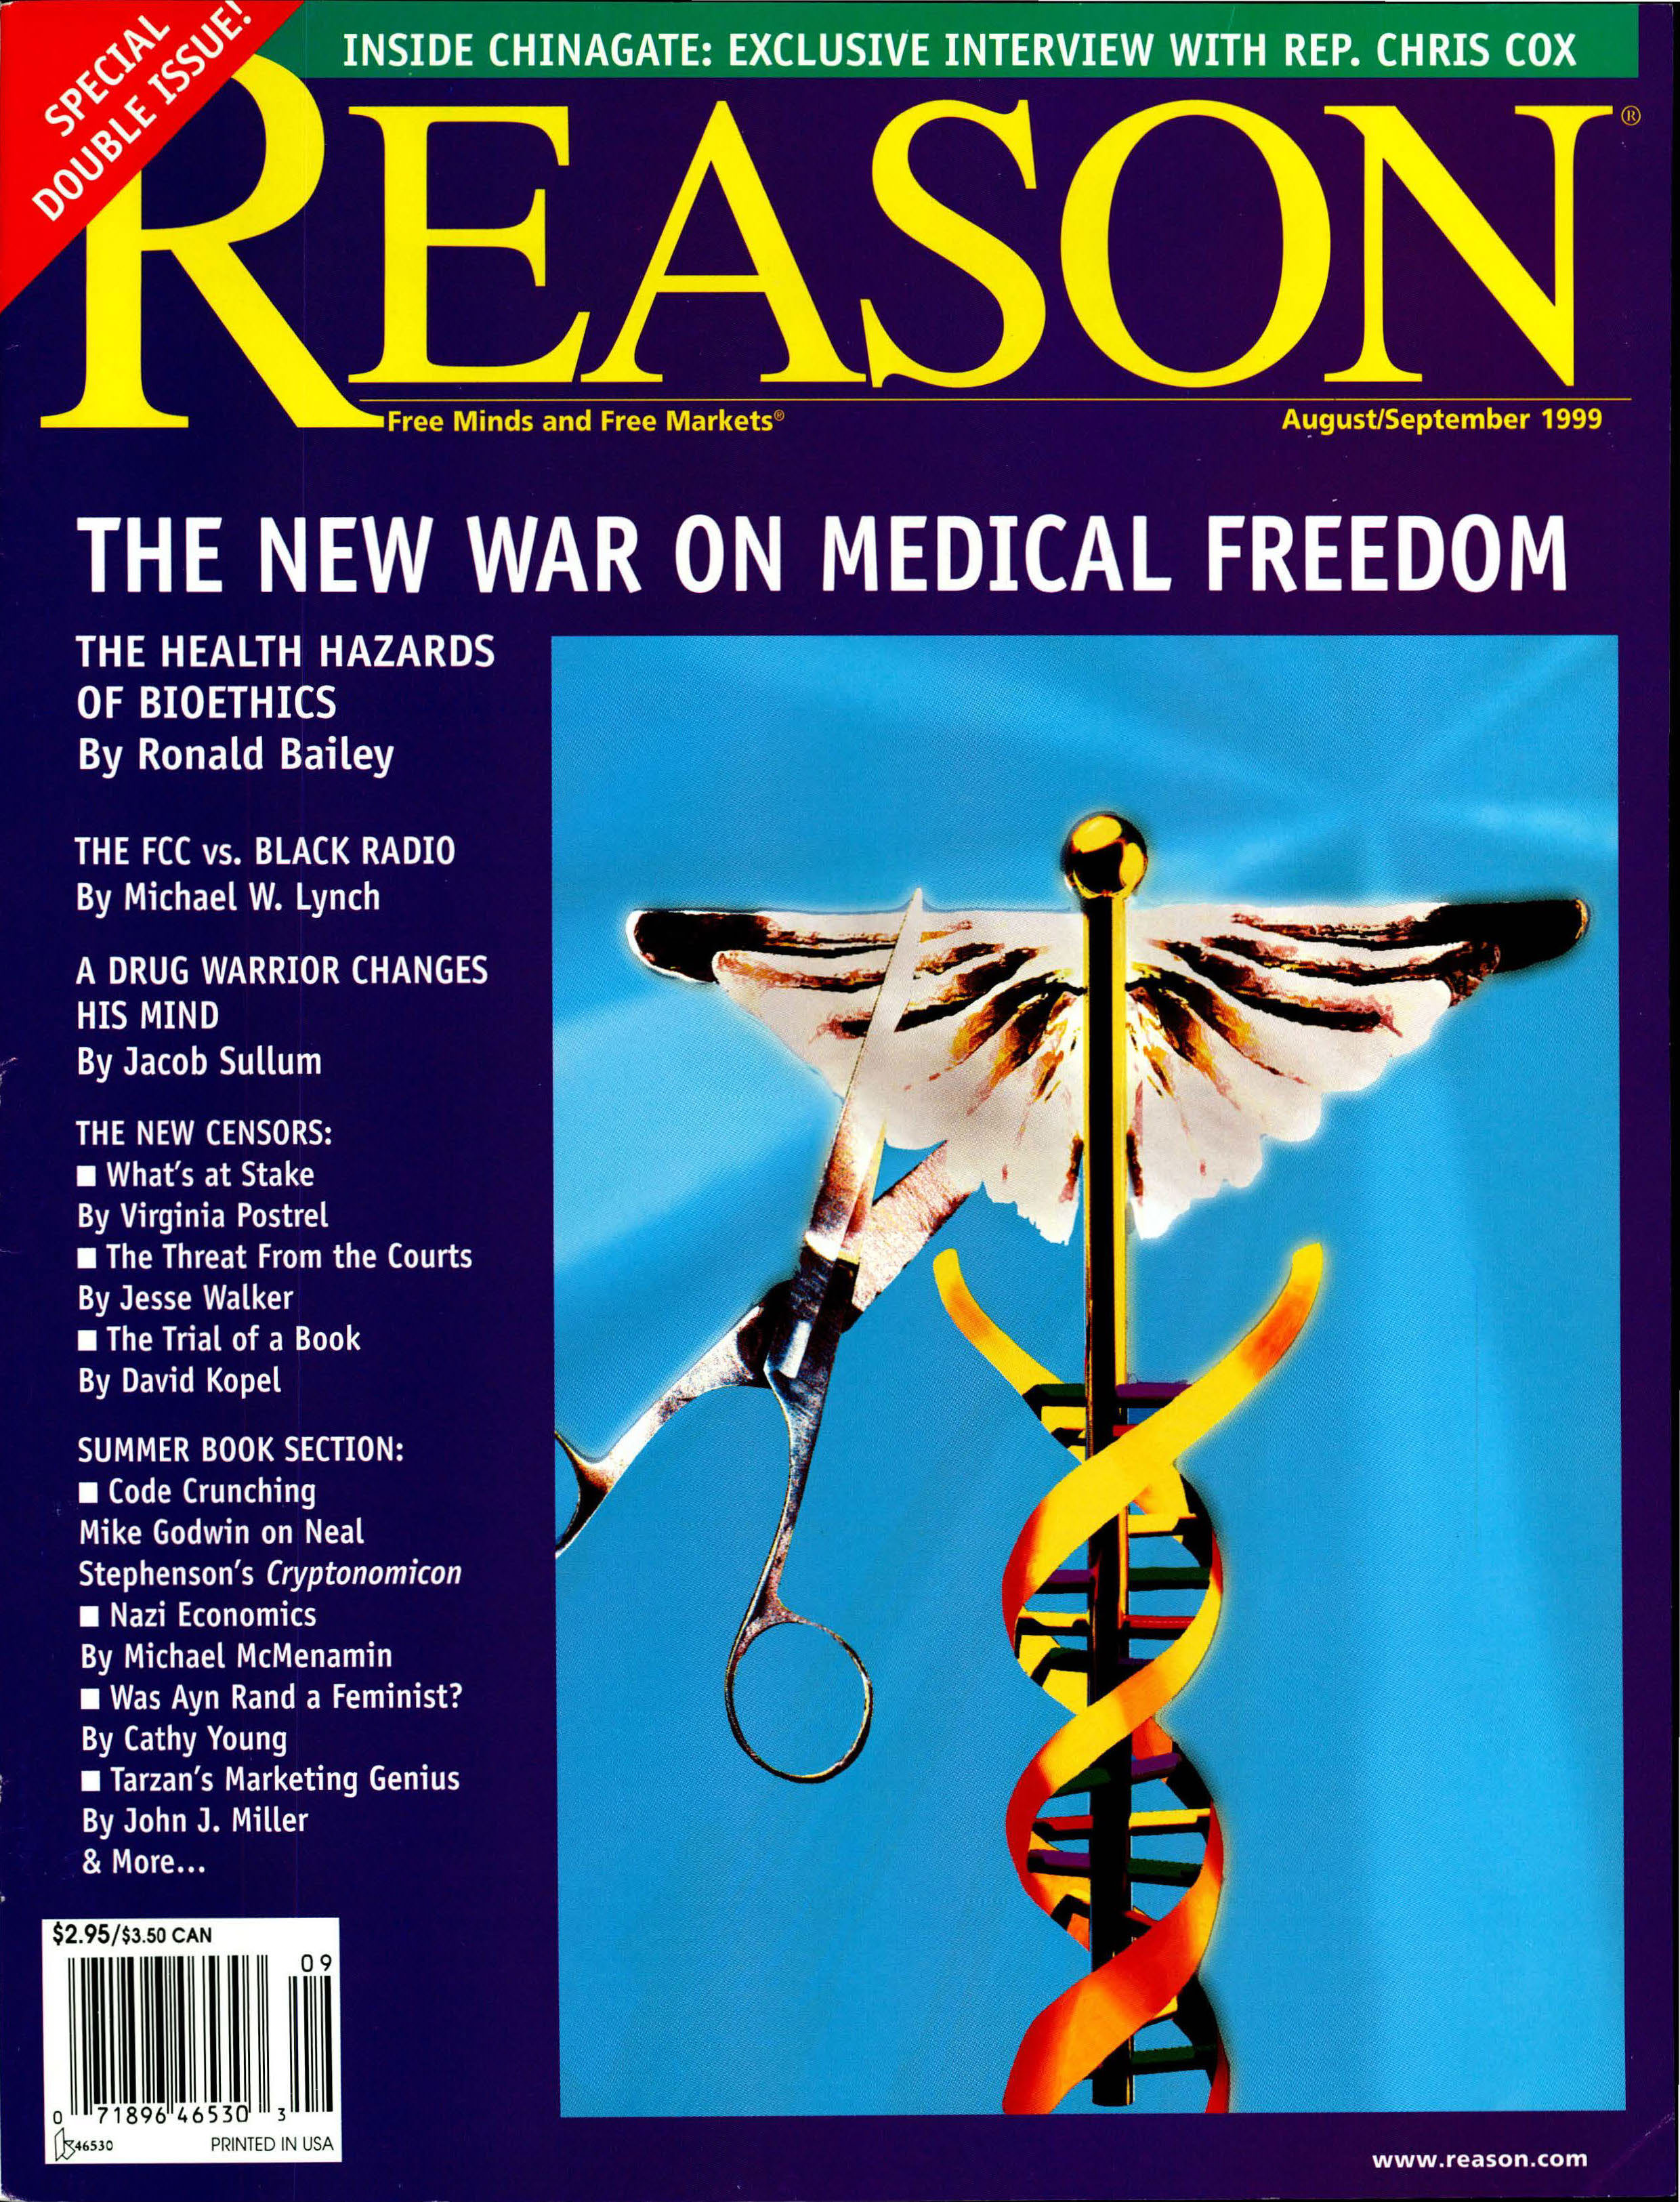 Reason Magazine, August/September 1999 cover image